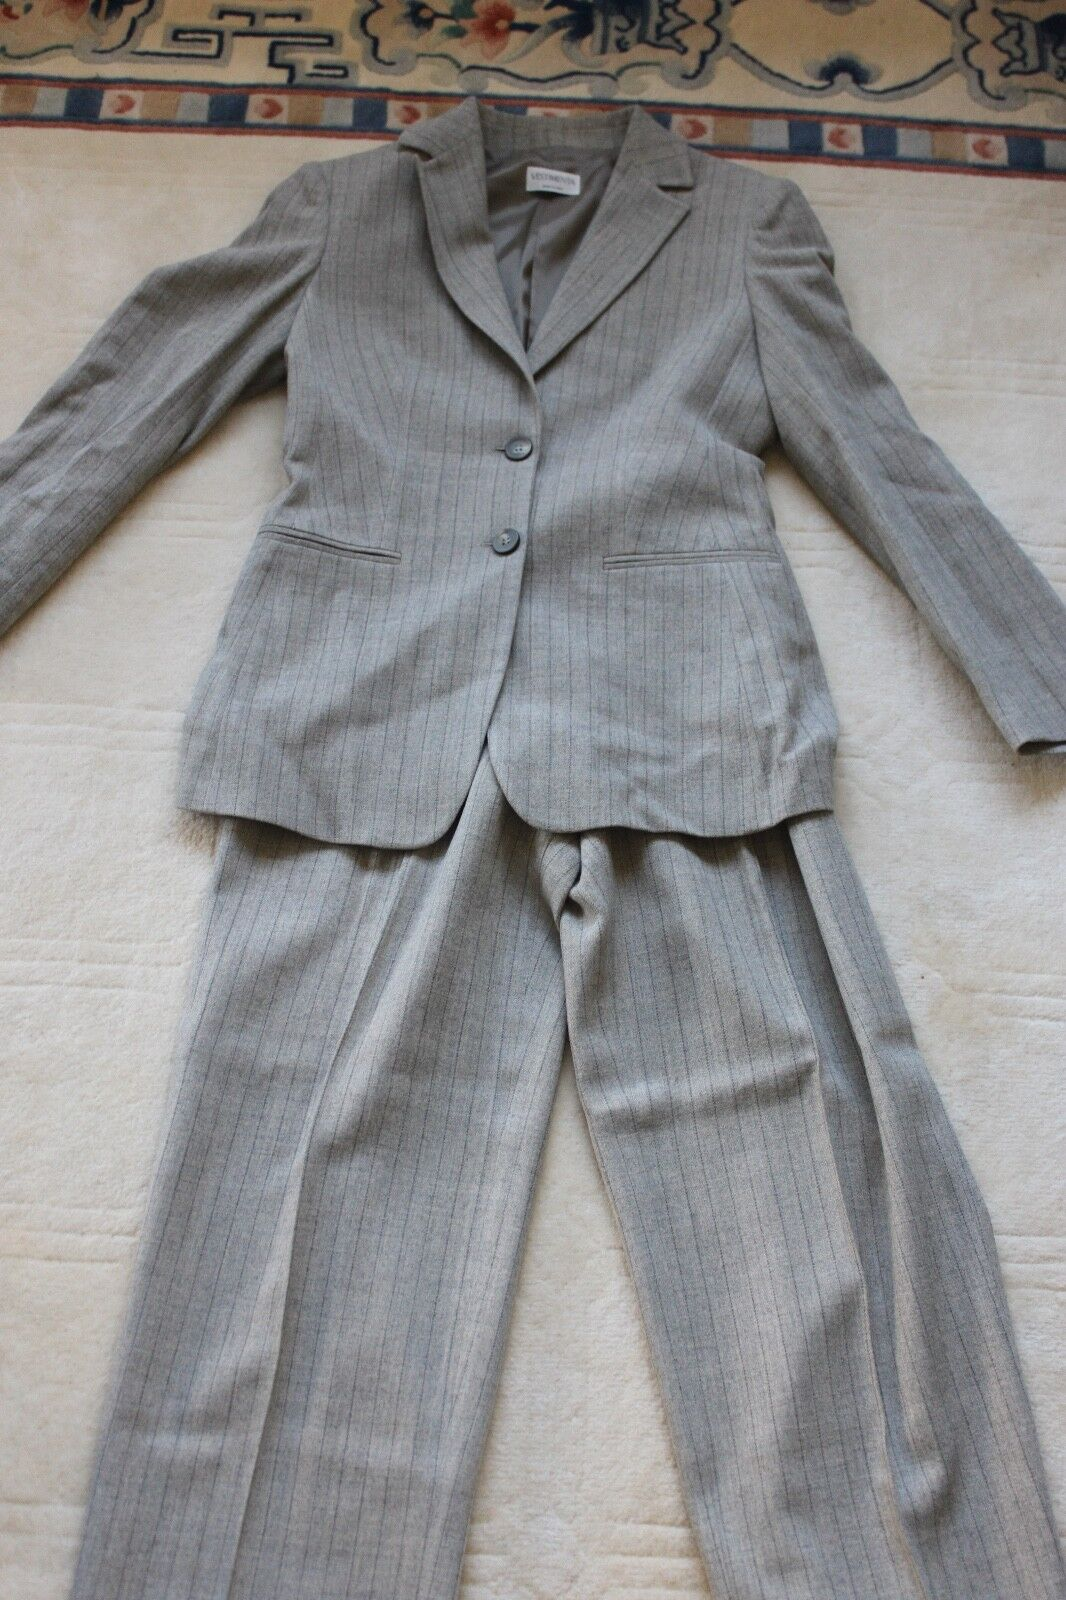 Made in  womens designer wool suit NWOT perfect condition  size 6 200.00